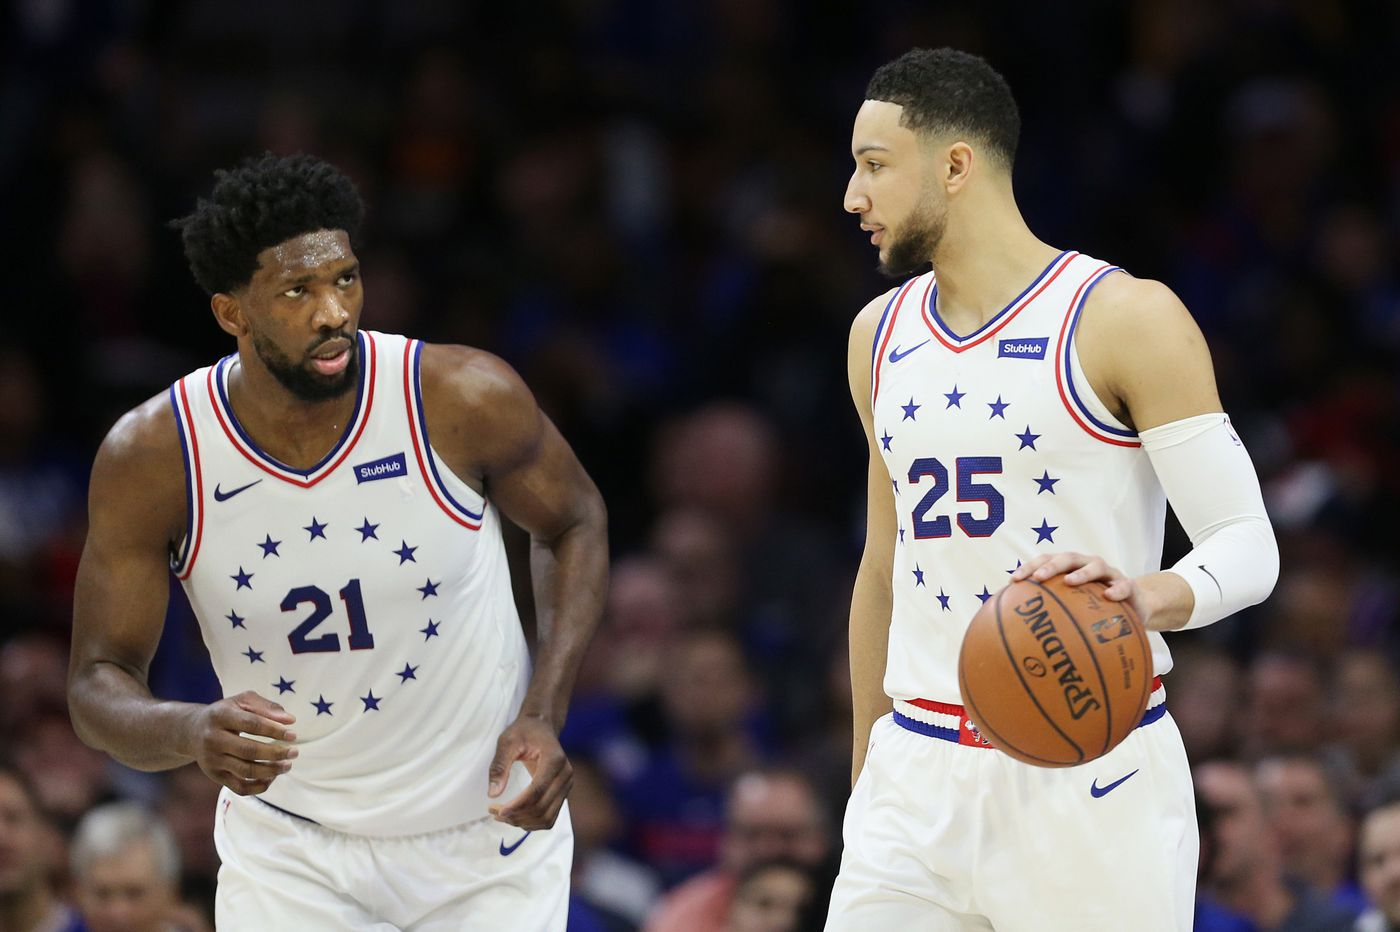 Sixers podcast: Dissecting Ben Simmons' All-NBA selection and Joel Embiid's snub